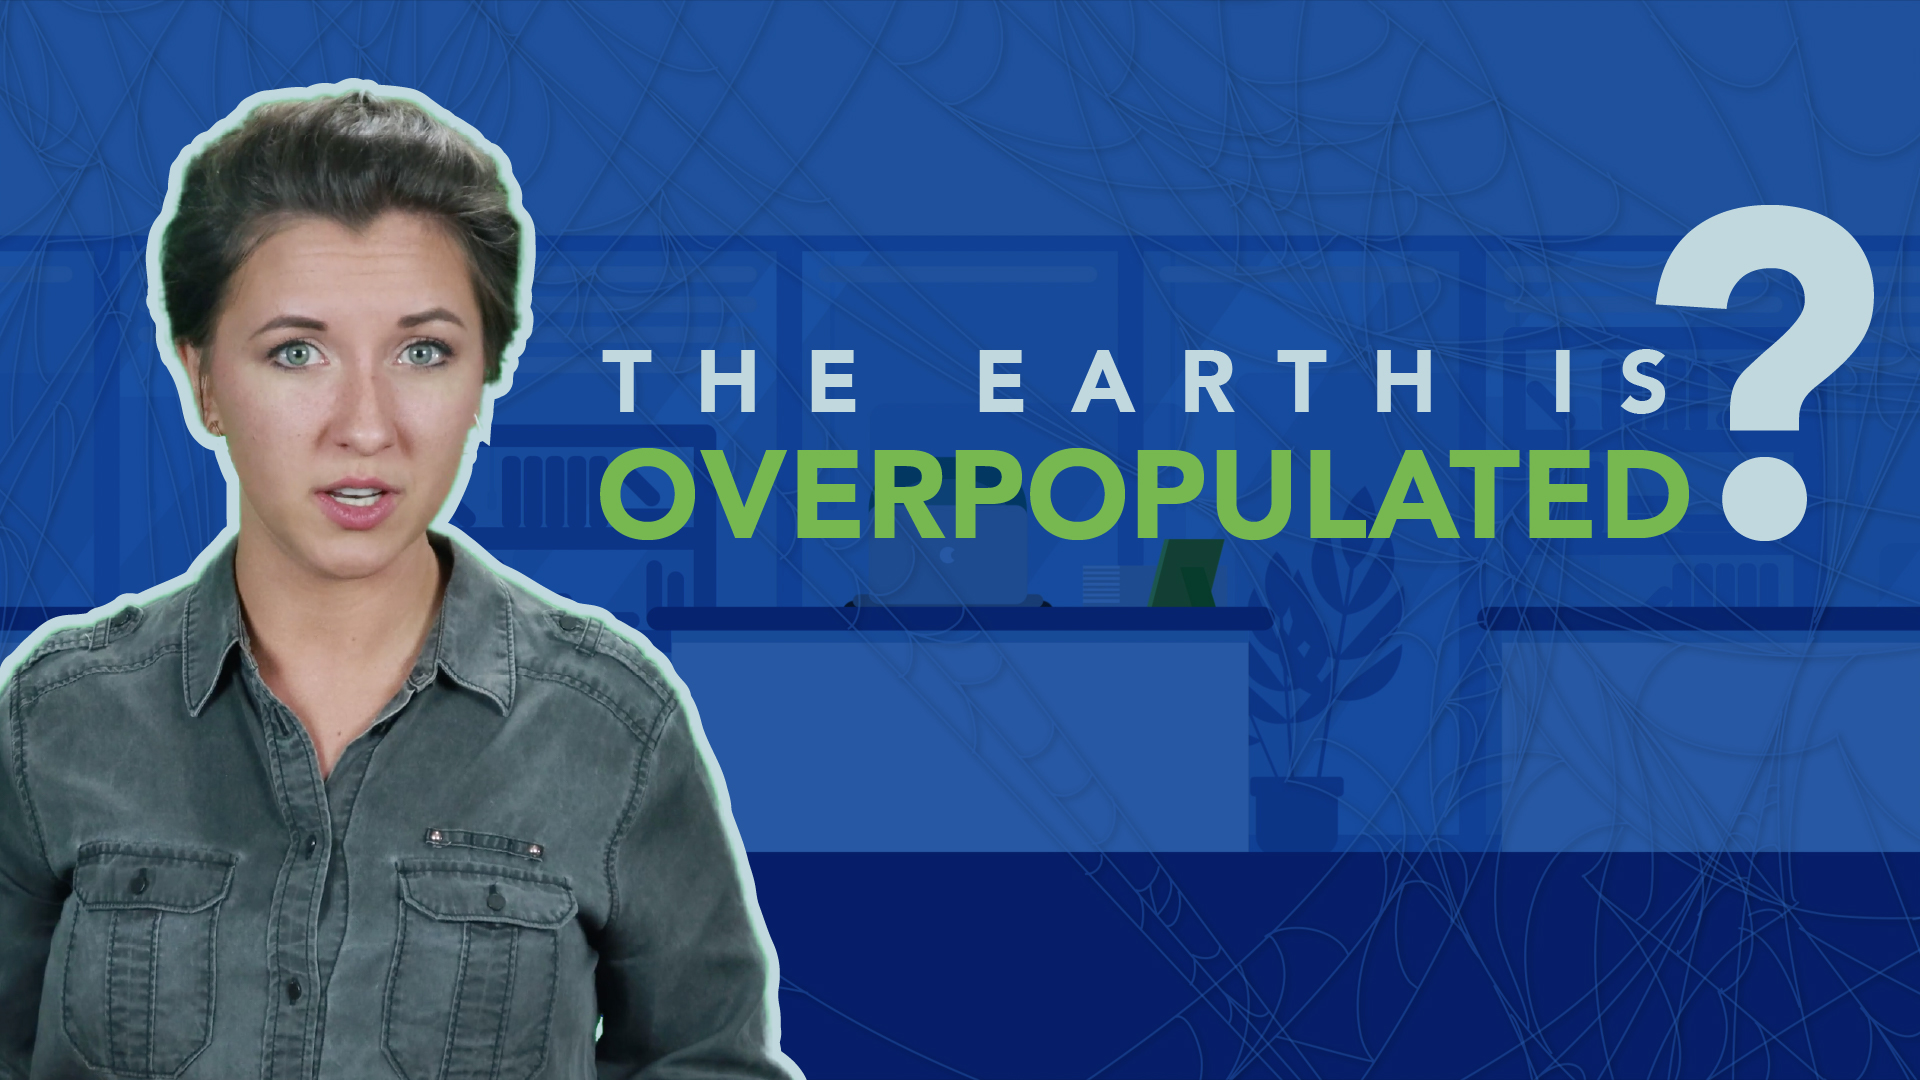 Should We Panic About Overpopulation?